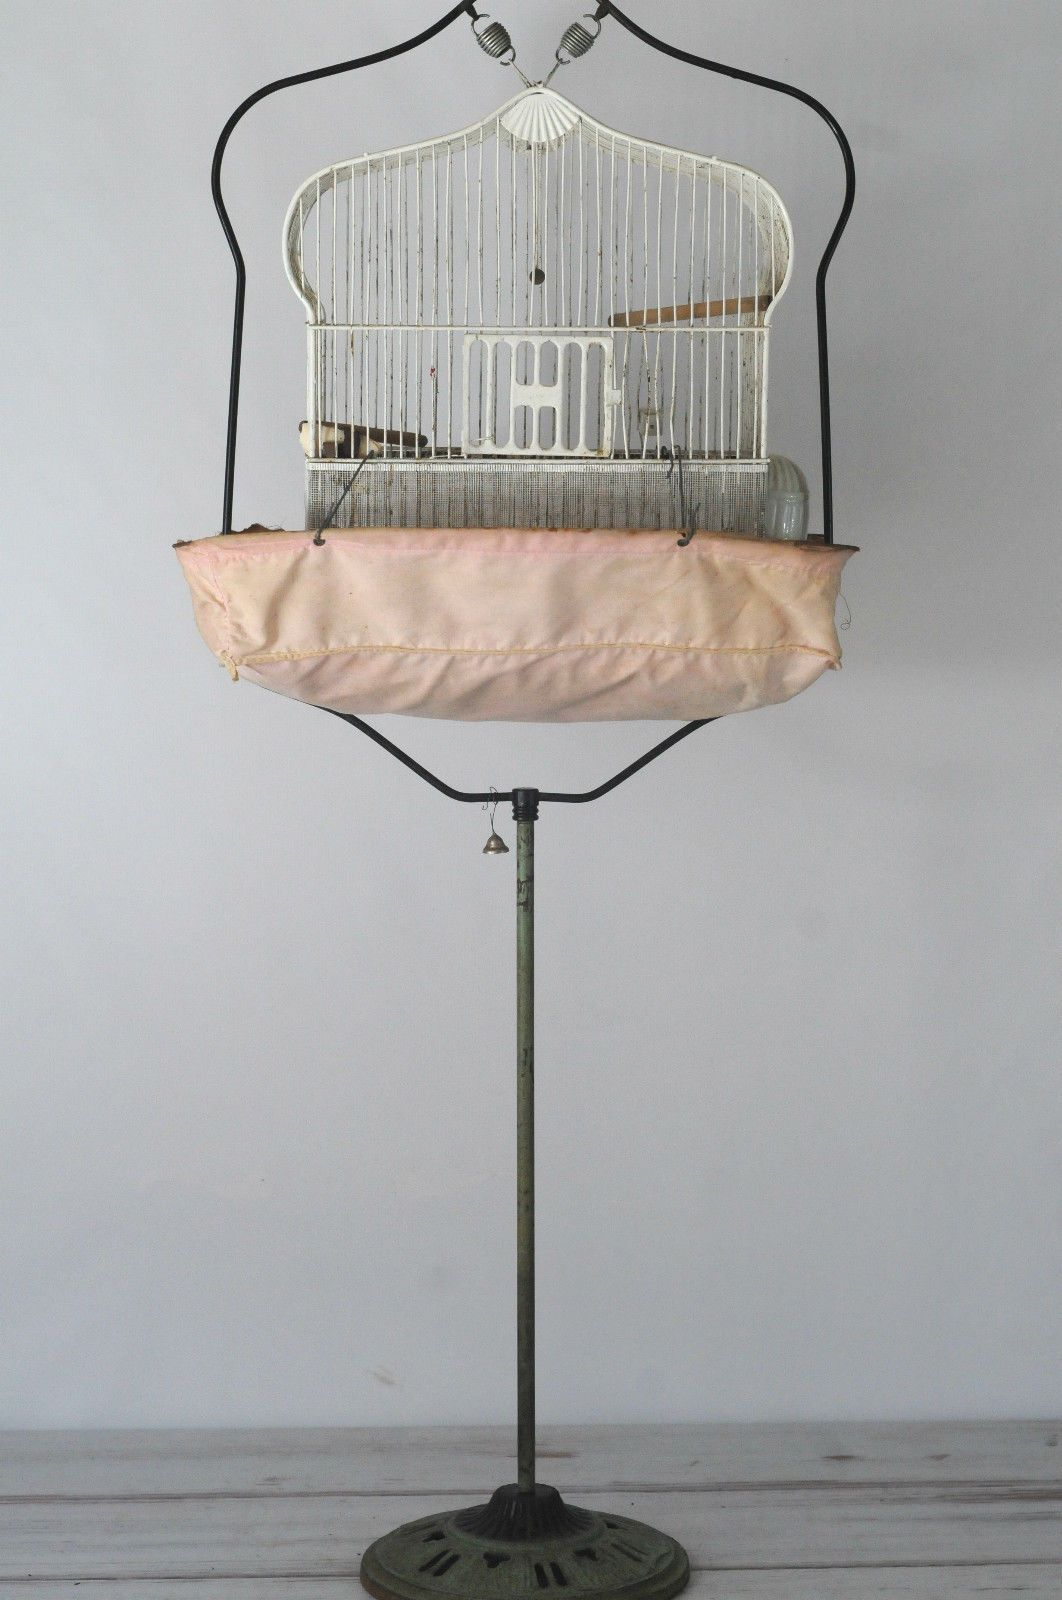 details about antique 1930s bird cage rare short cast iron birdcage stand with cage skirt bird. Black Bedroom Furniture Sets. Home Design Ideas